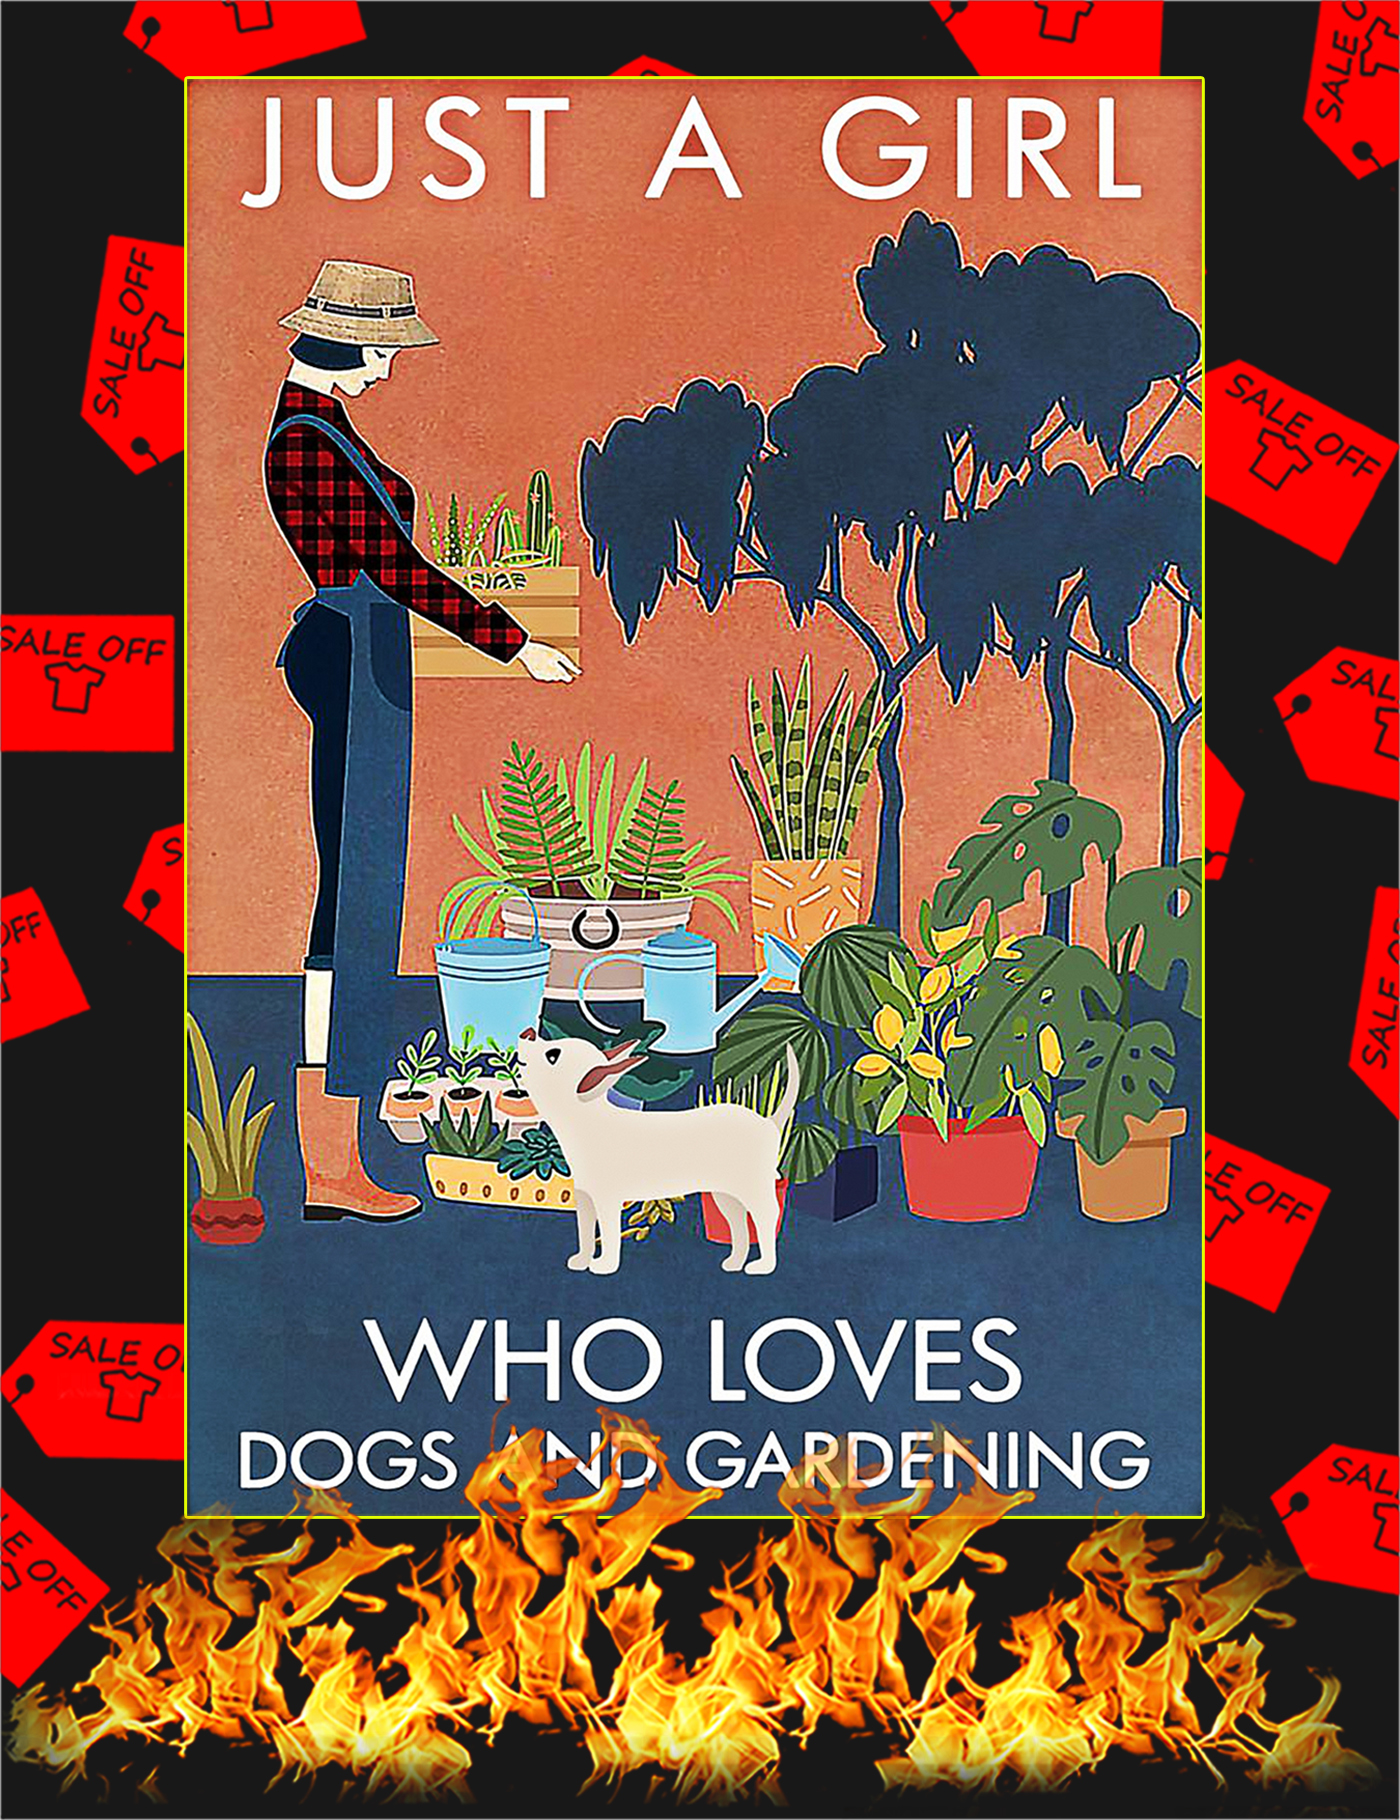 Just a girl who loves dogs and gardening poster - A1